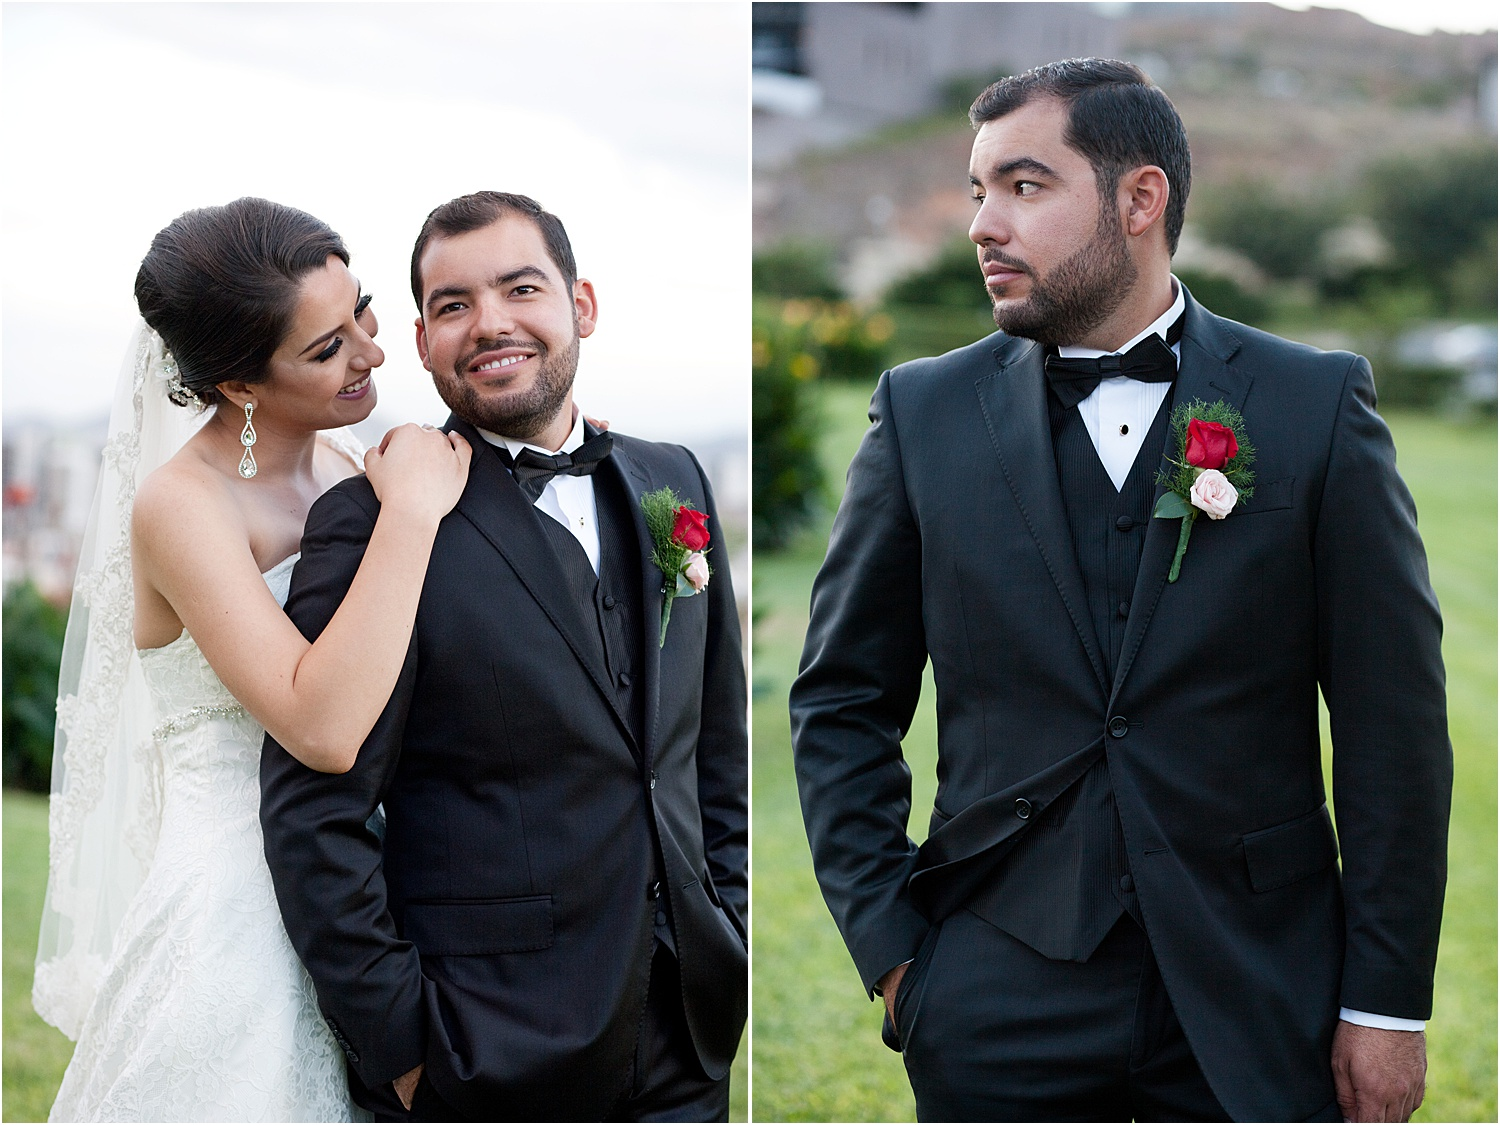 https://i2.wp.com/digital-photography-school.com/wp-content/uploads/2019/04/how-to-photograph-grooms.jpg?resize=1500%2C1125&ssl=1